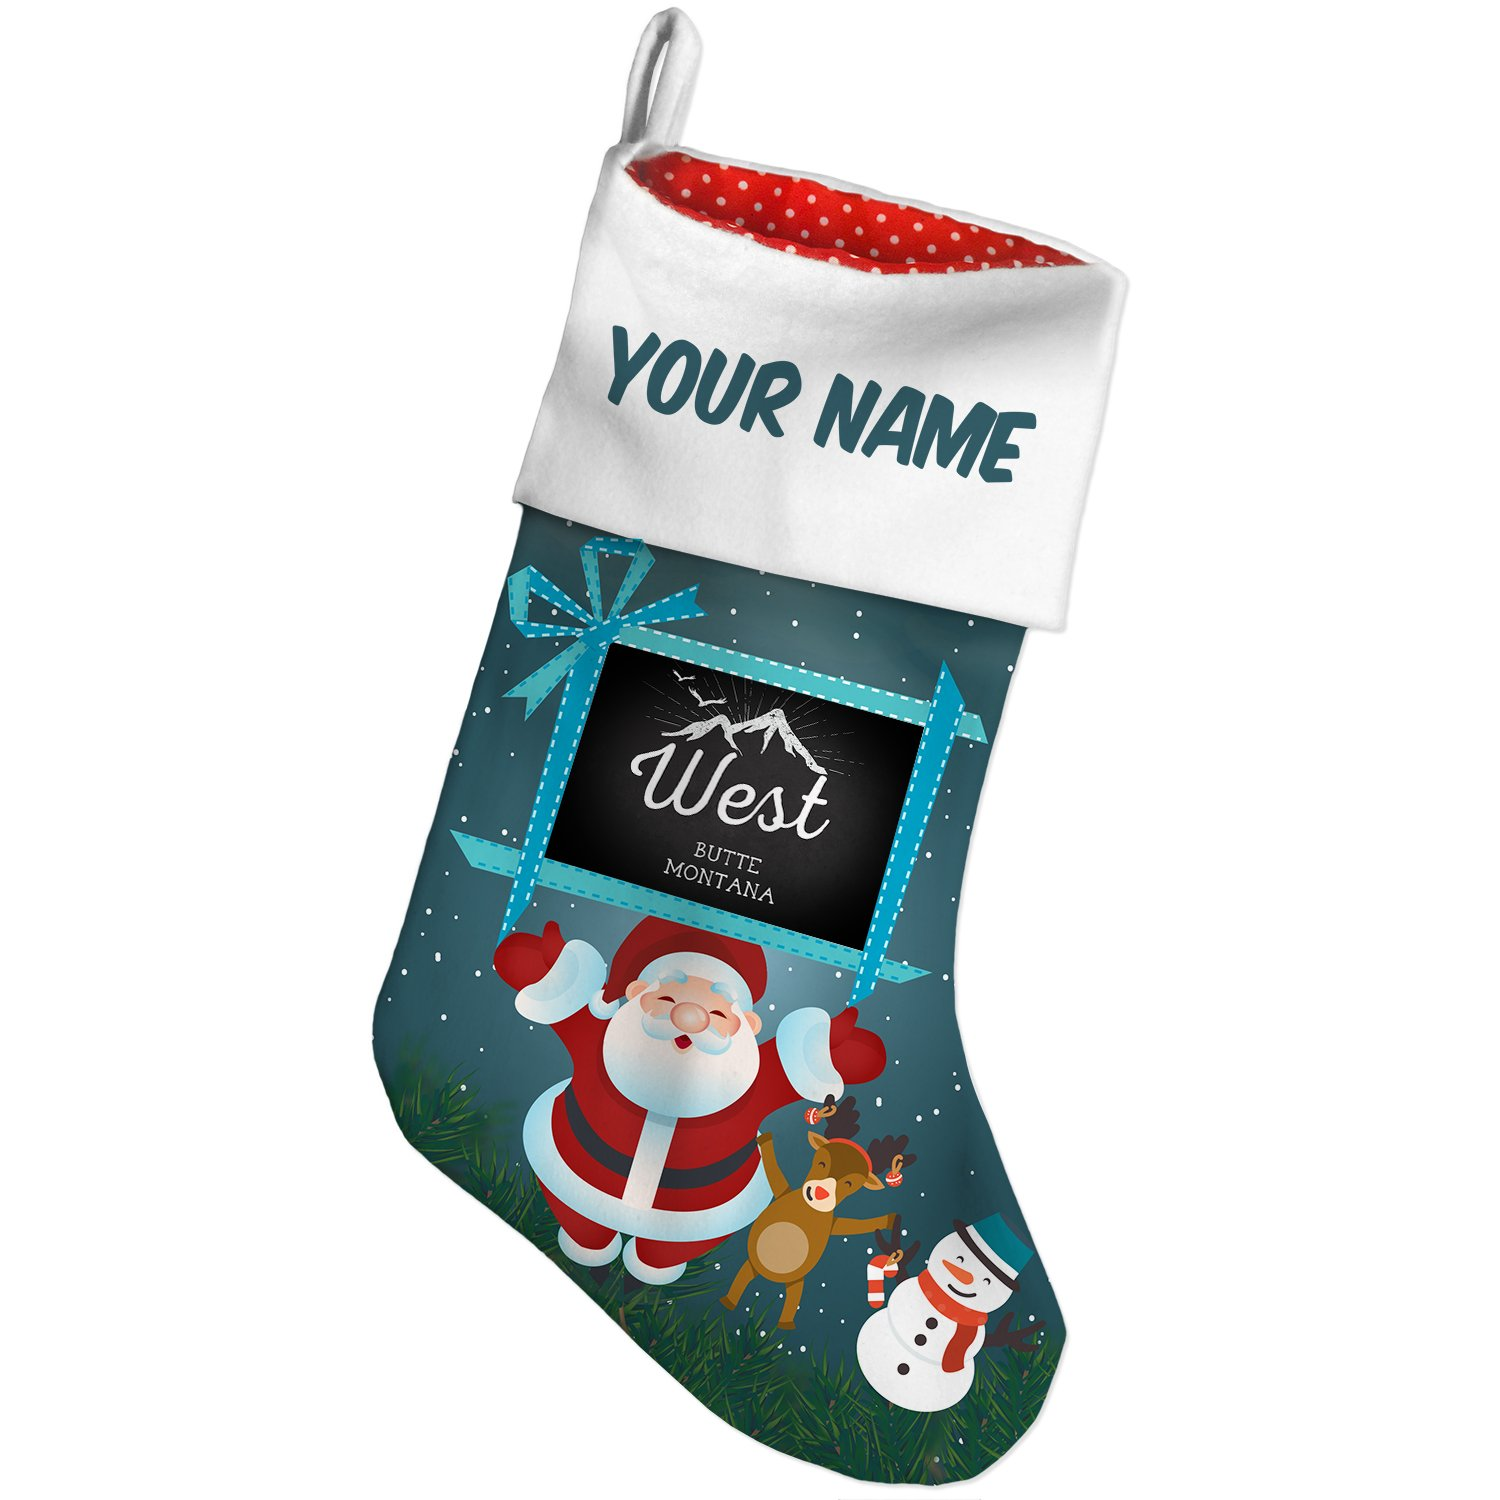 Amazon.com: Christmas Stocking Mountains chalkboard West Butte ...